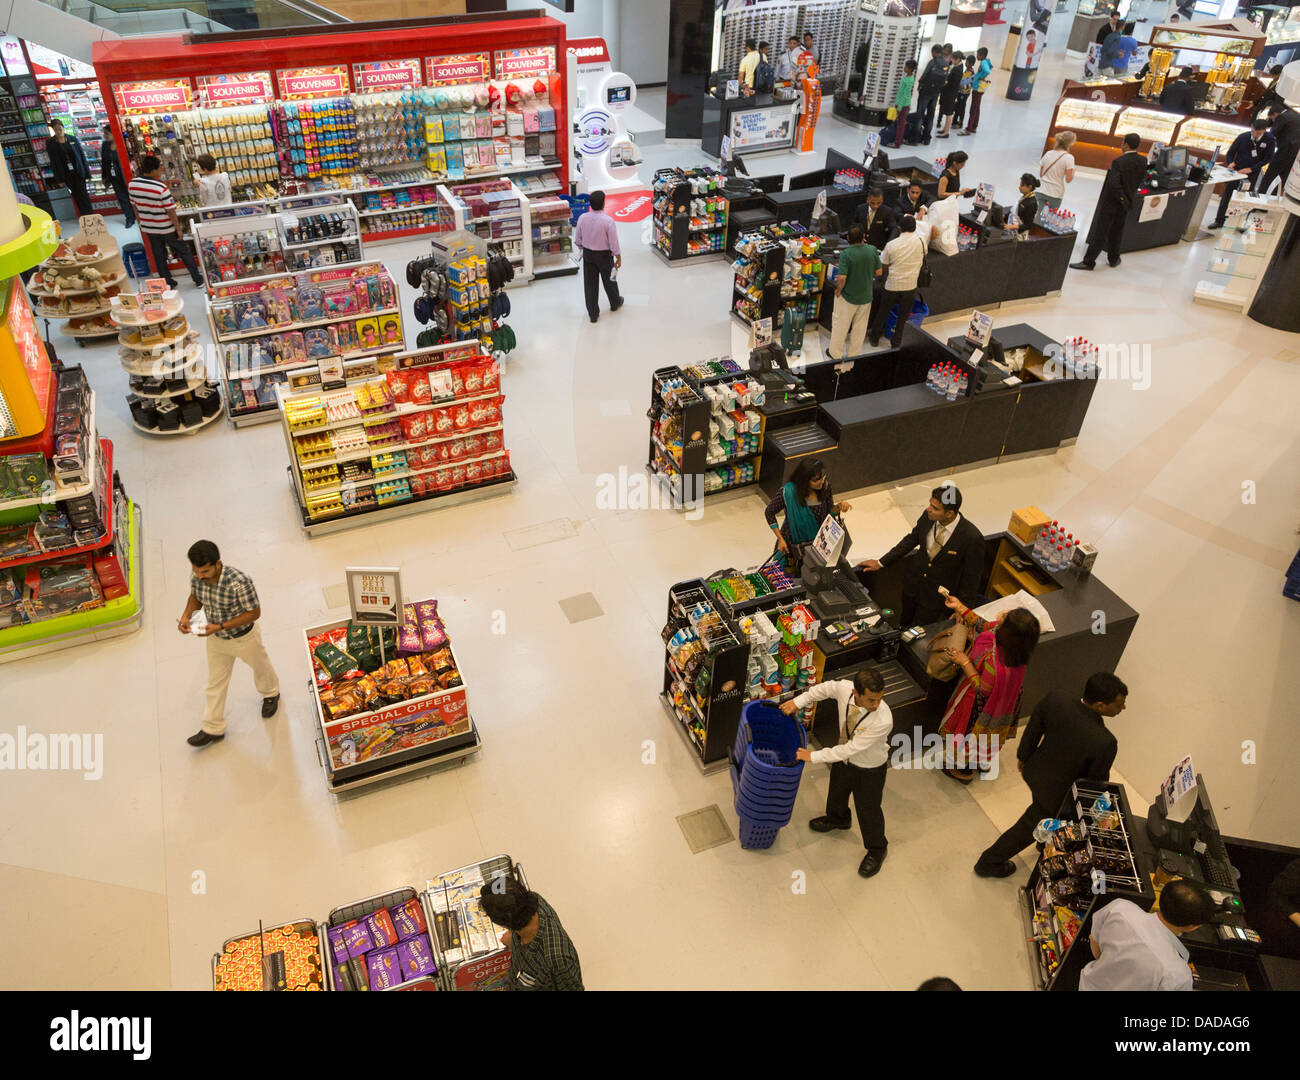 duty free shop, Doha airport, Qatar - Stock Image